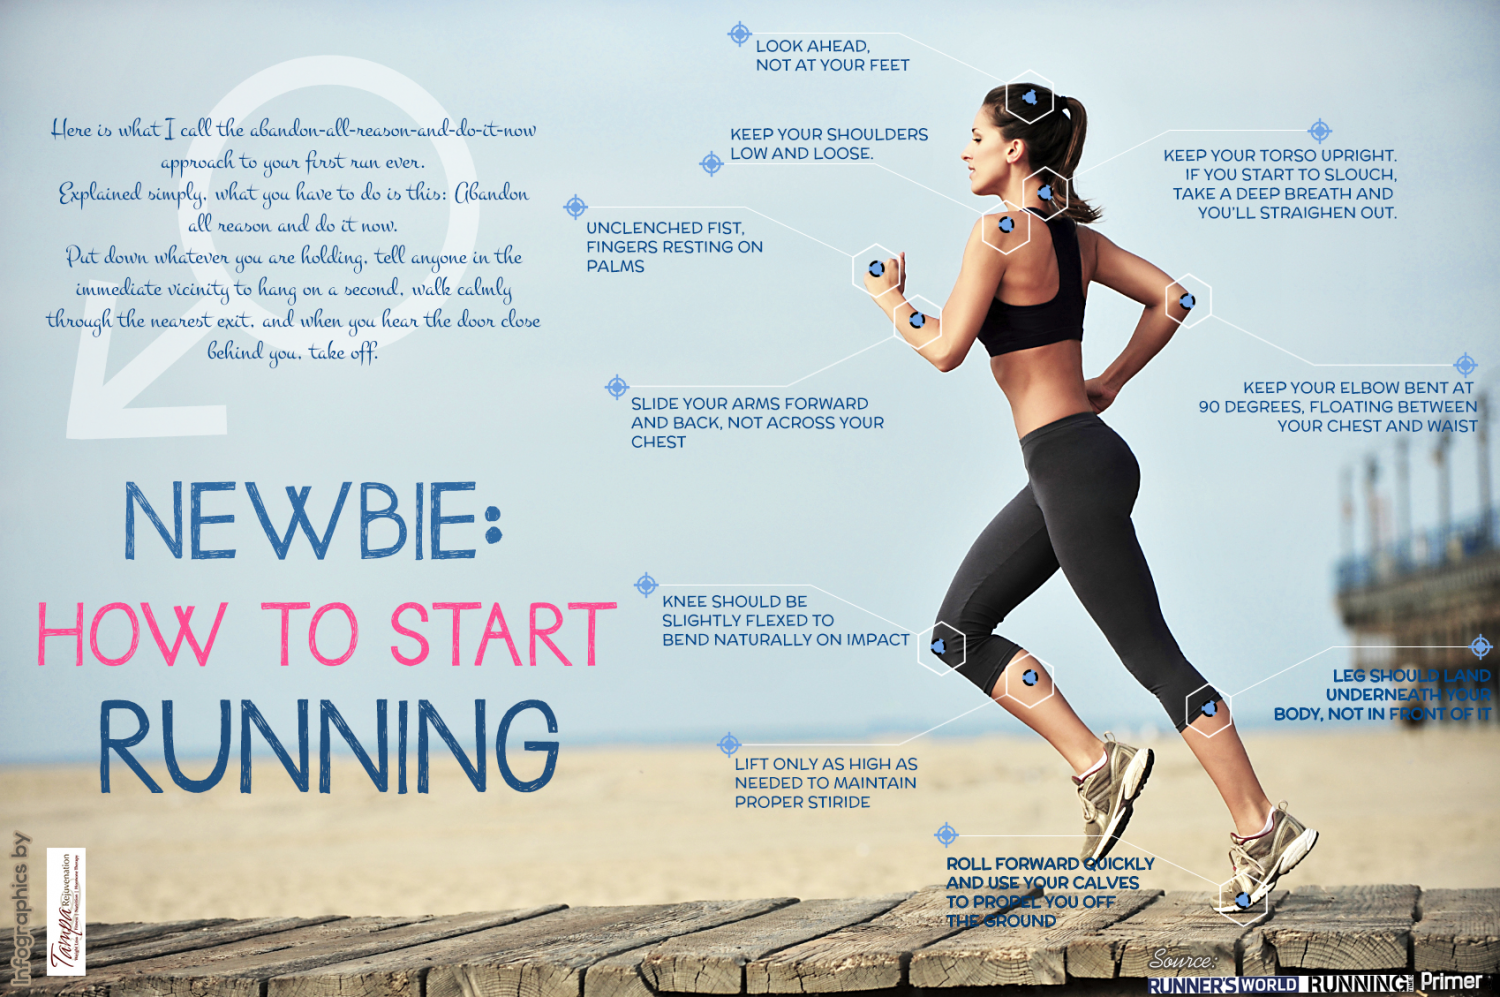 Newbie: How to Start Running  Infographic